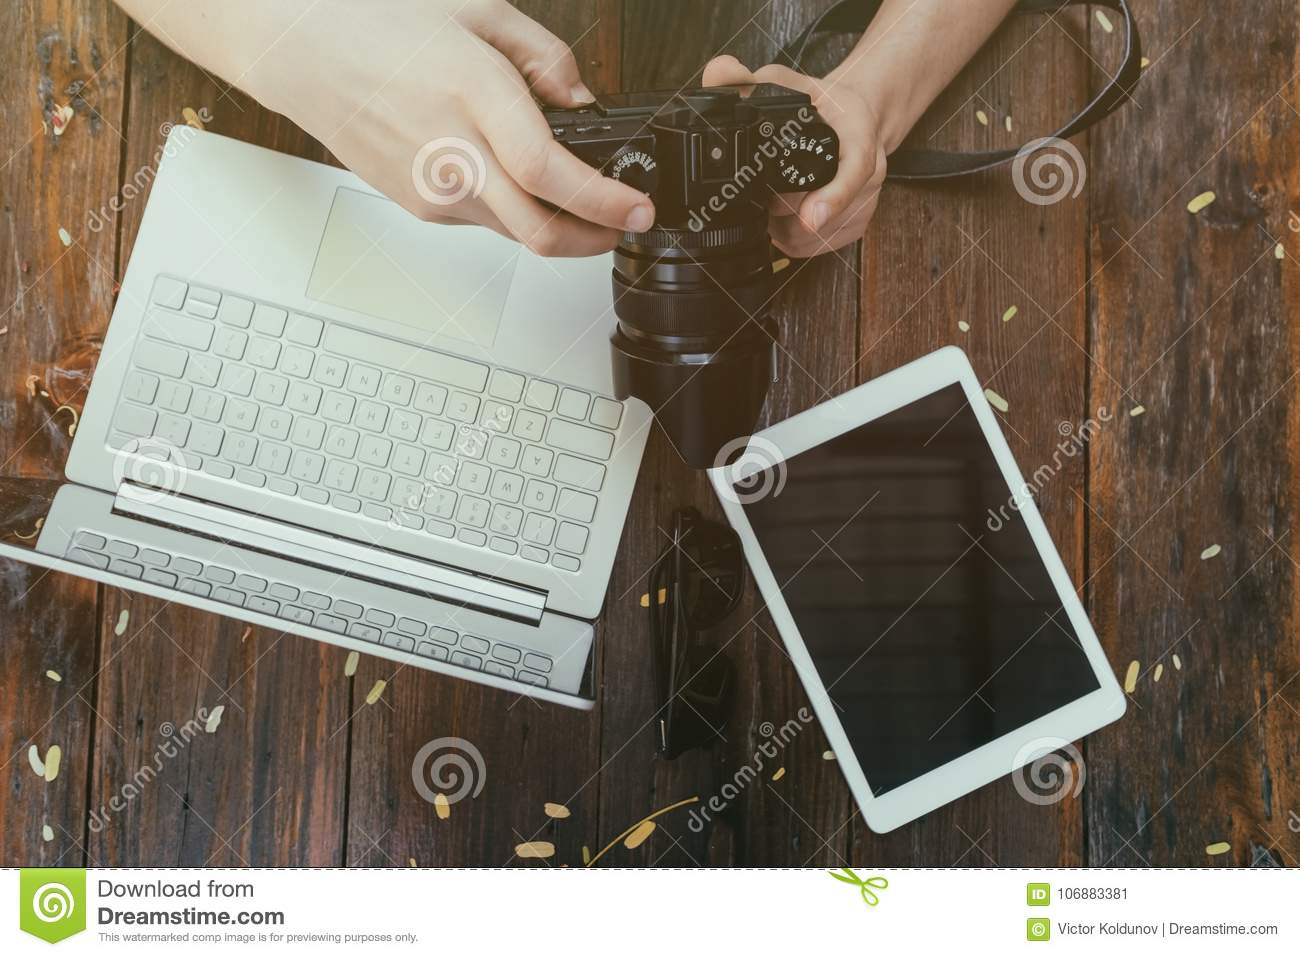 Hipster vintage wooden desktop top view, male hands holding photocamera watching photos.